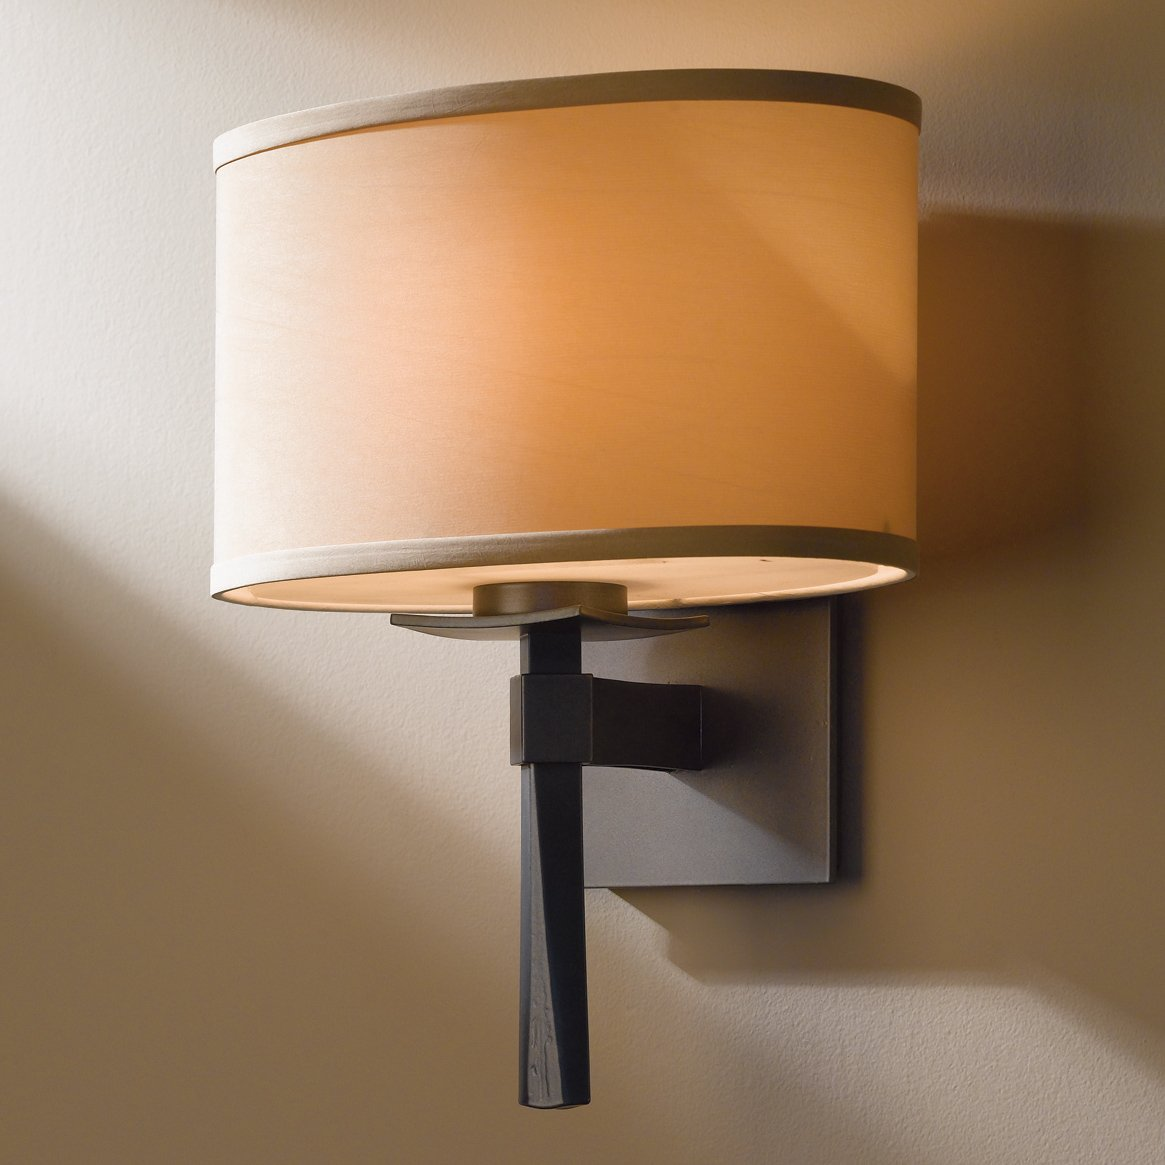 Image of: Beacon Hubbardton Forge Sconce